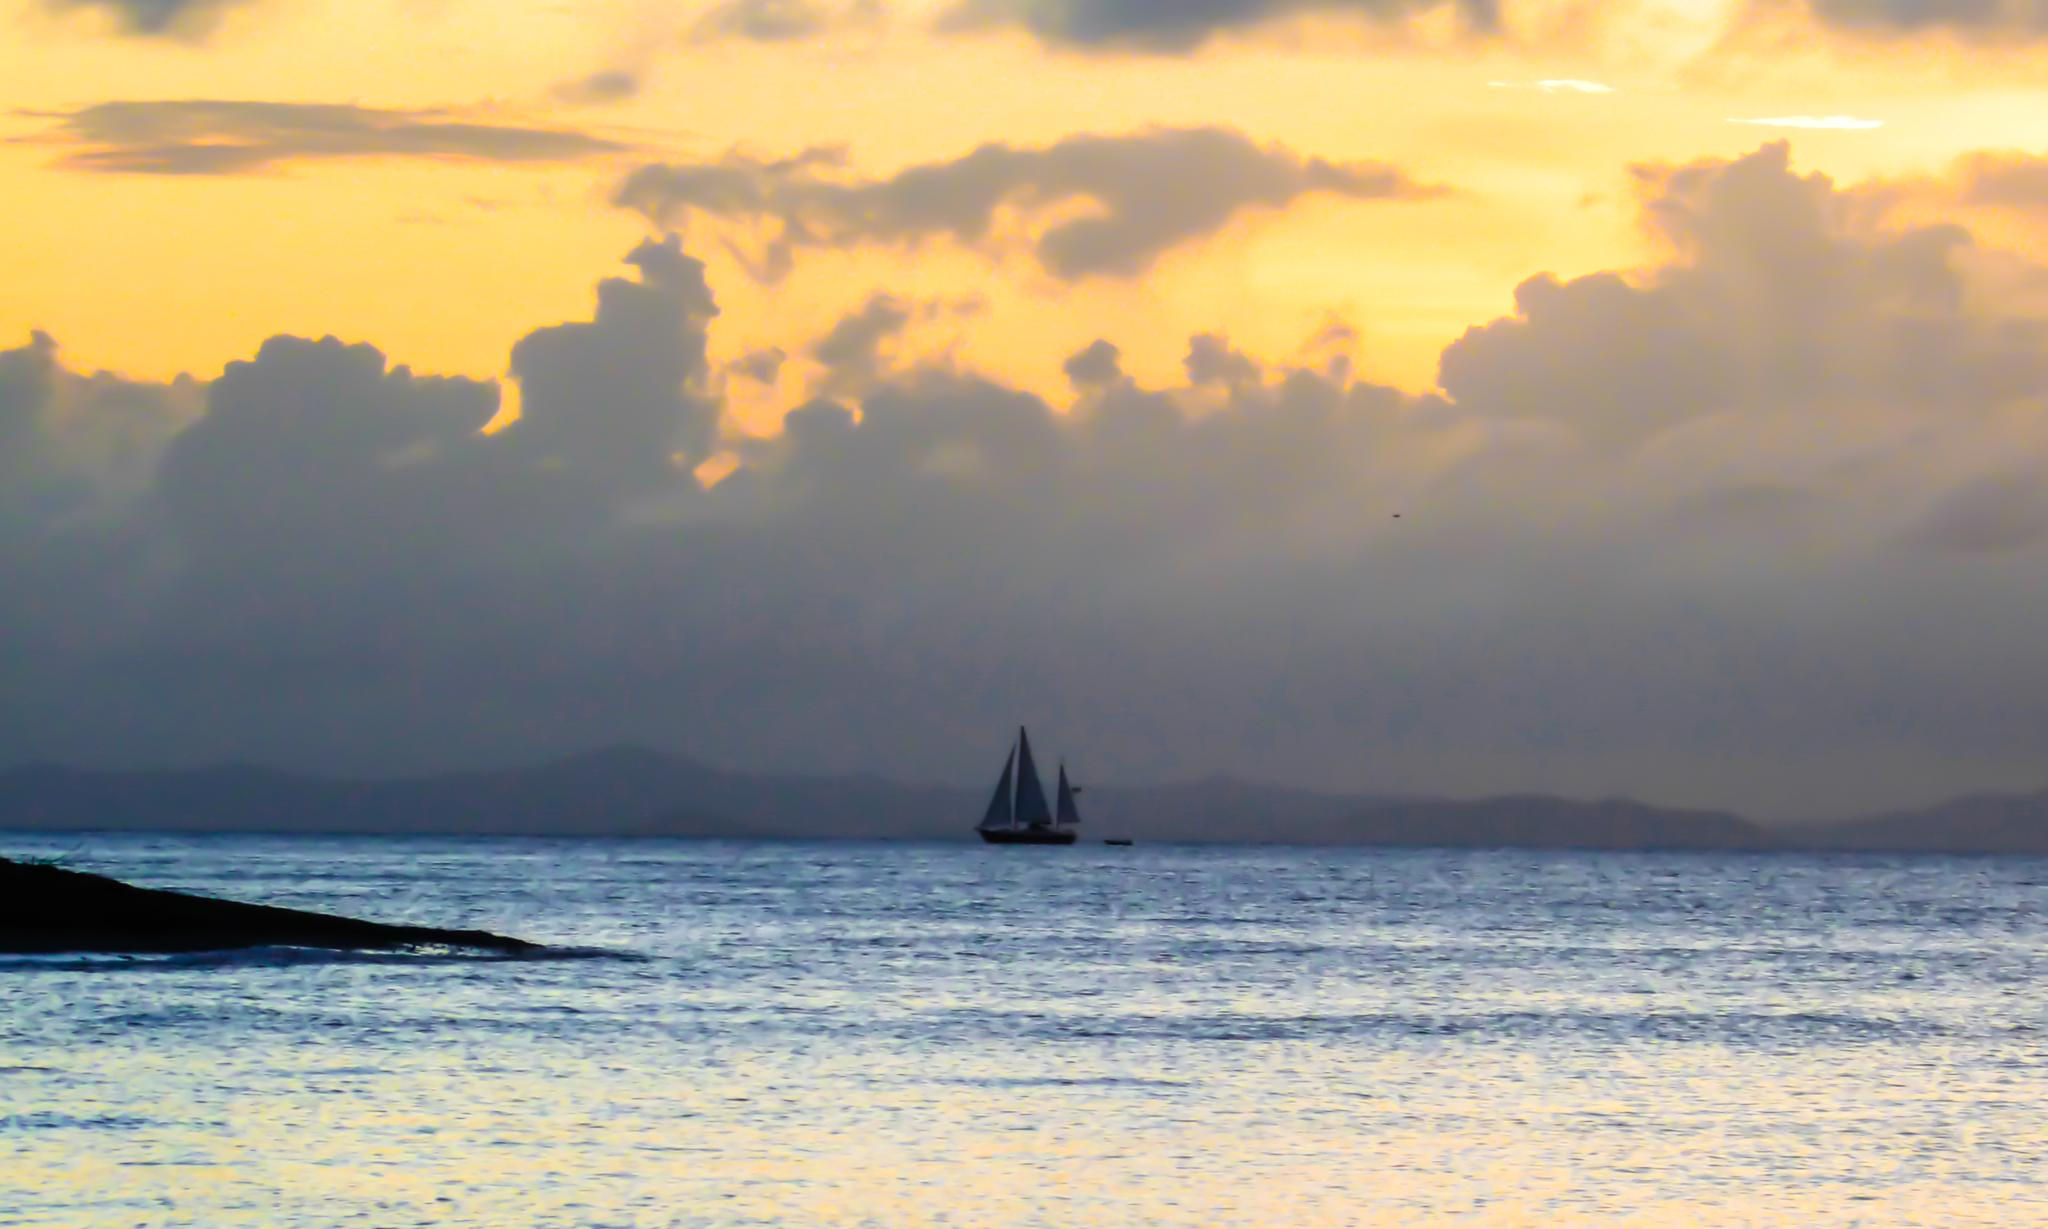 Sailboat by Cait Templeton